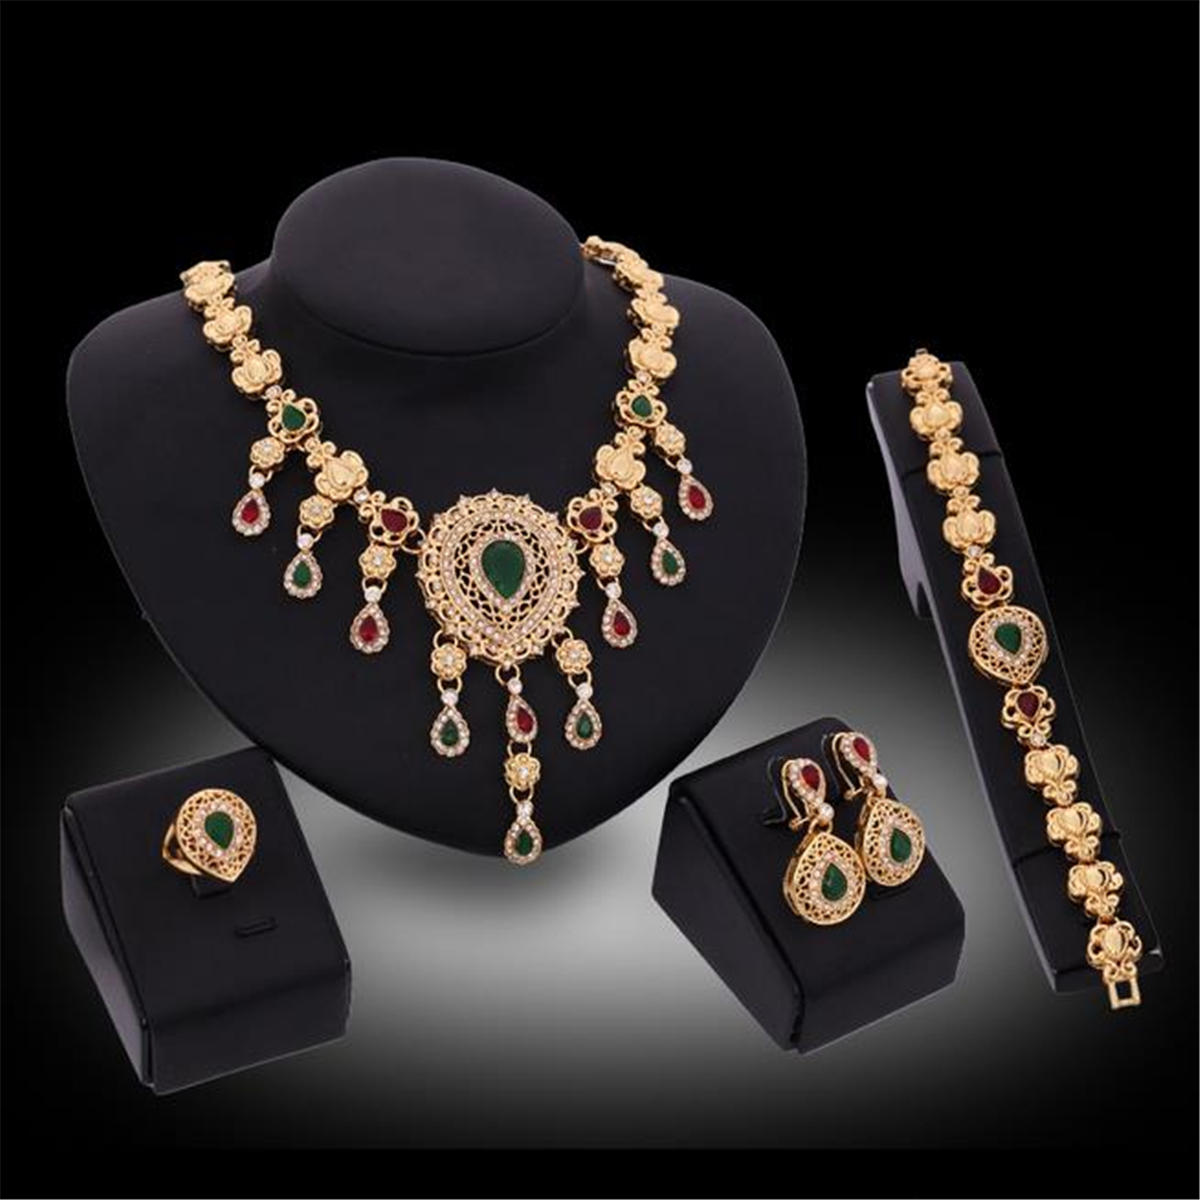 Gold Plated Rhinestone Crystal Wedding Party Necklace Bracelet Ring Earring Set Jewelry Set For Women